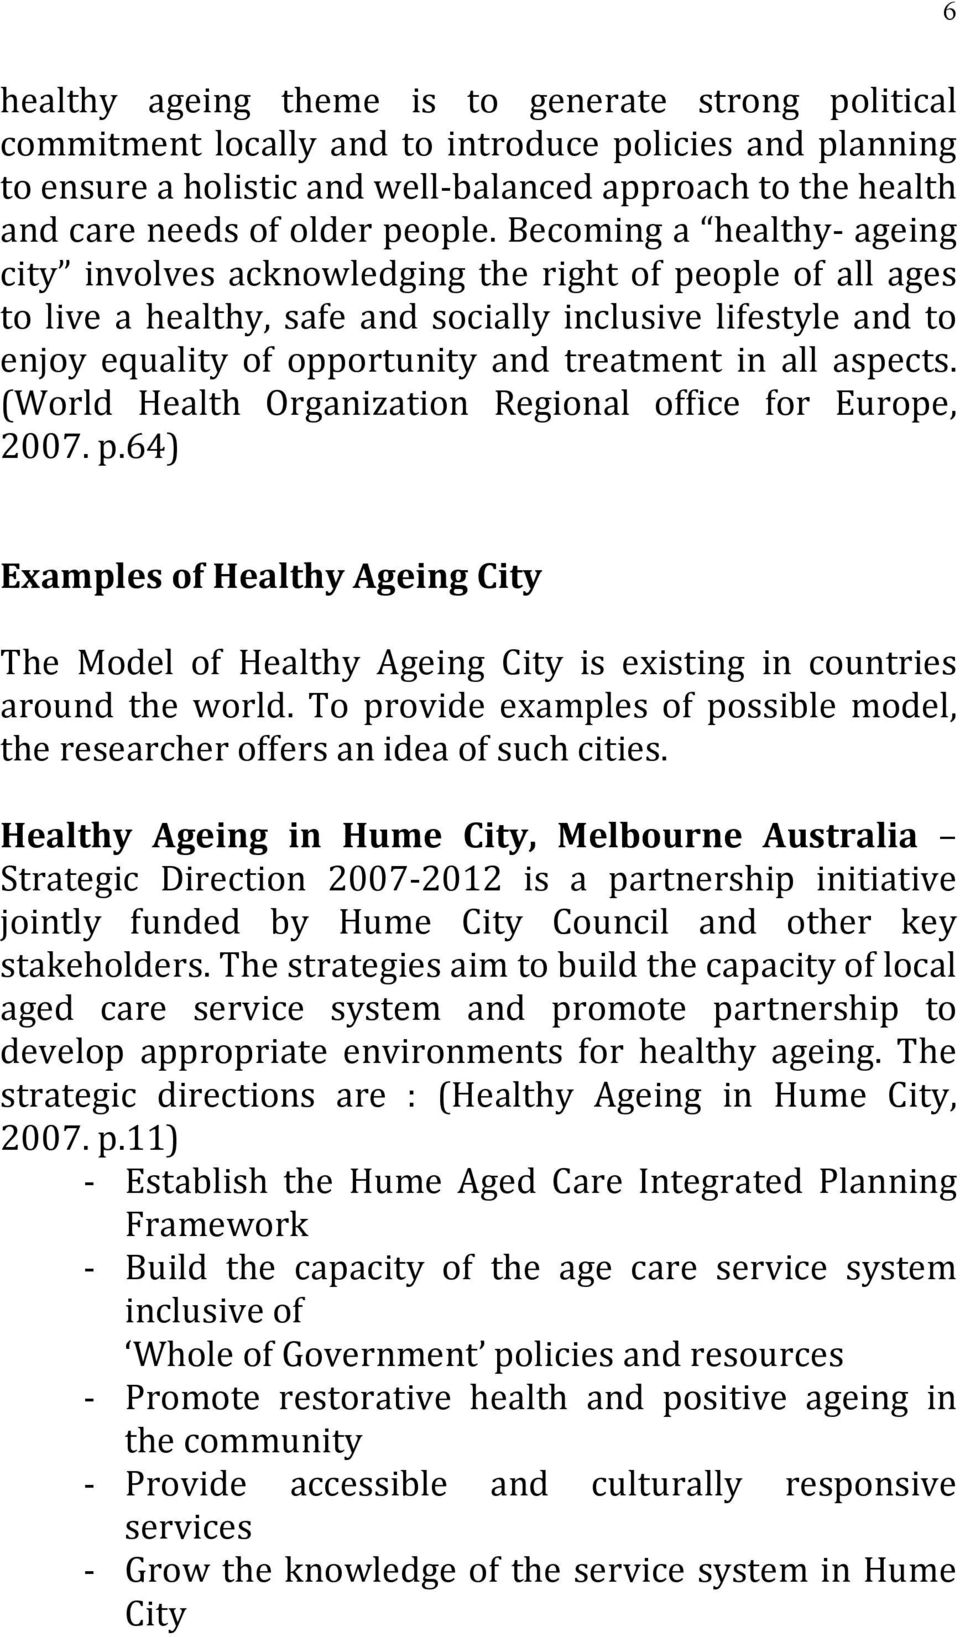 Becoming a healthy ageing city involves acknowledging the right of people of all ages to live a healthy, safe and socially inclusive lifestyle and to enjoy equality of opportunity and treatment in